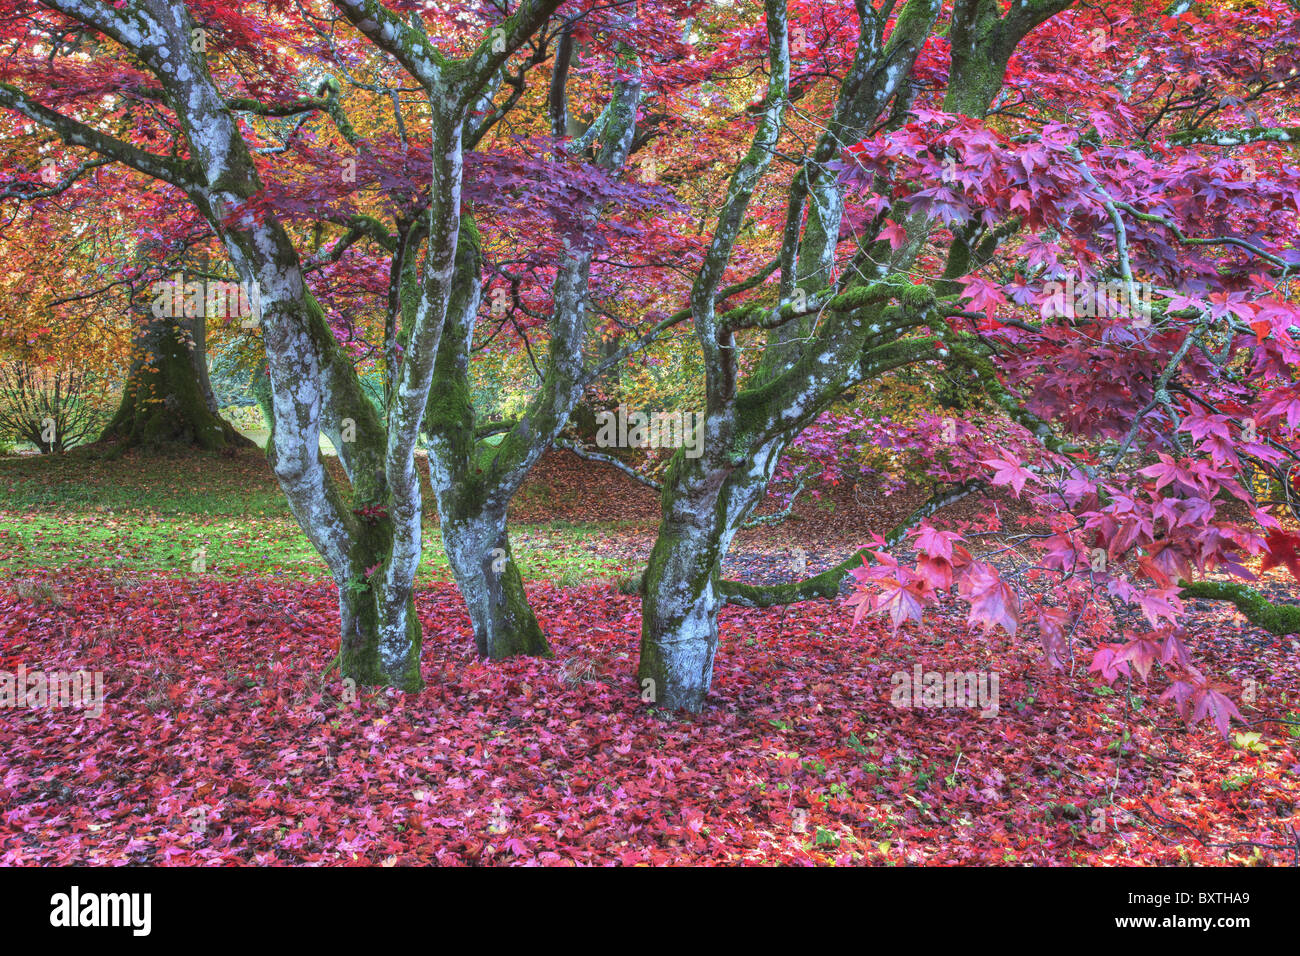 Leaves in shades of red covering trees Scotland - Stock Image